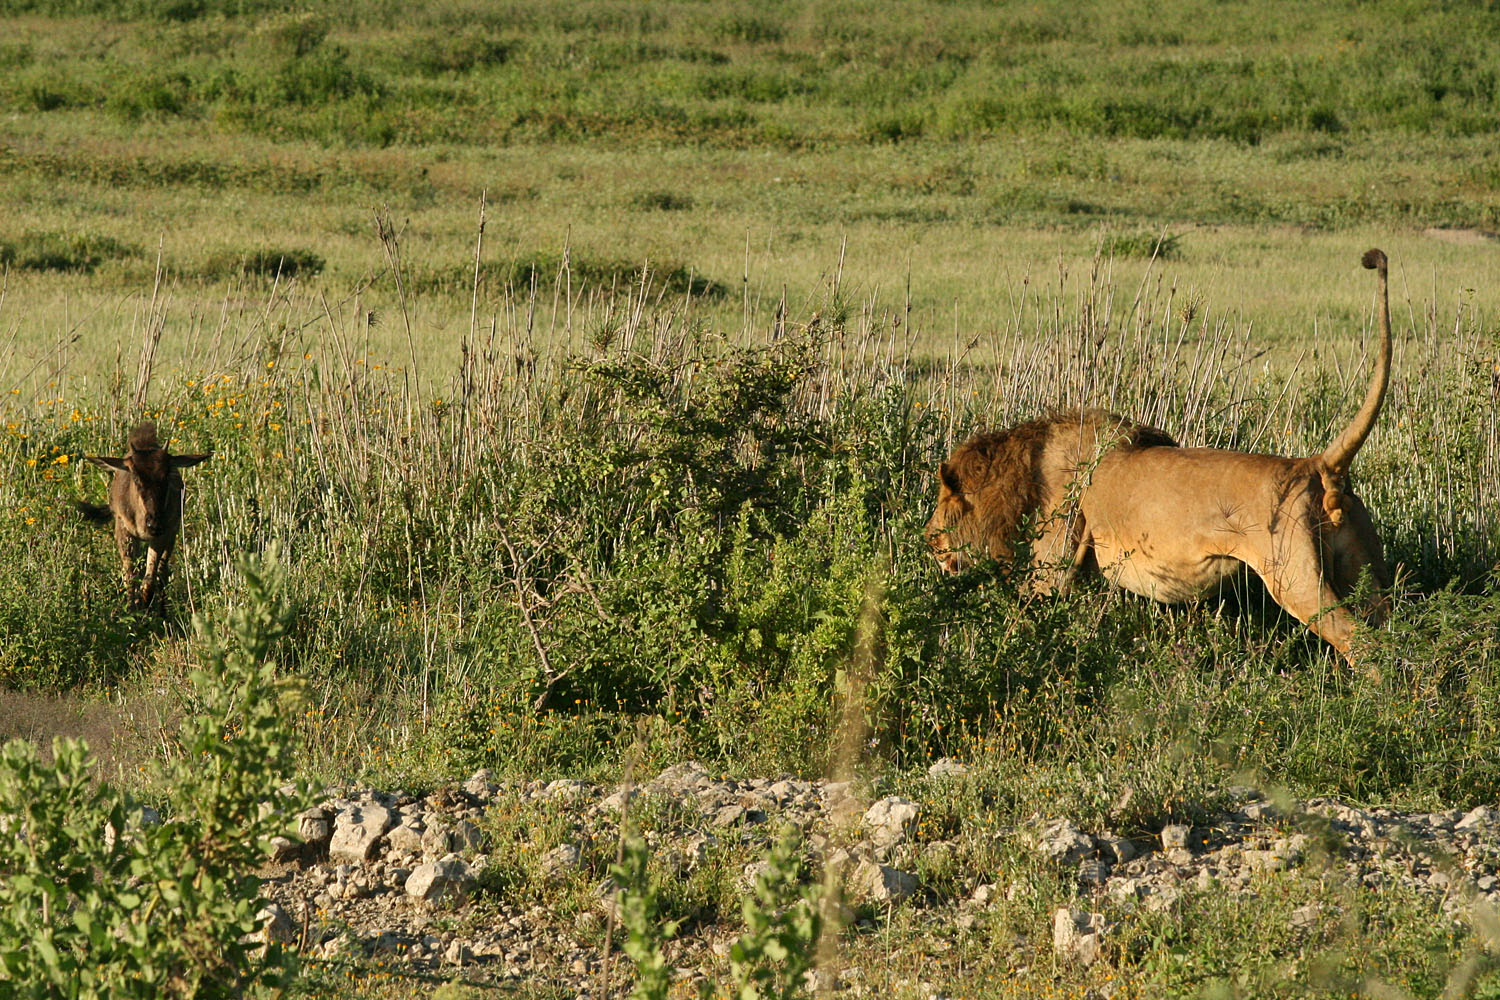 Male lion stalking prey - photo#14